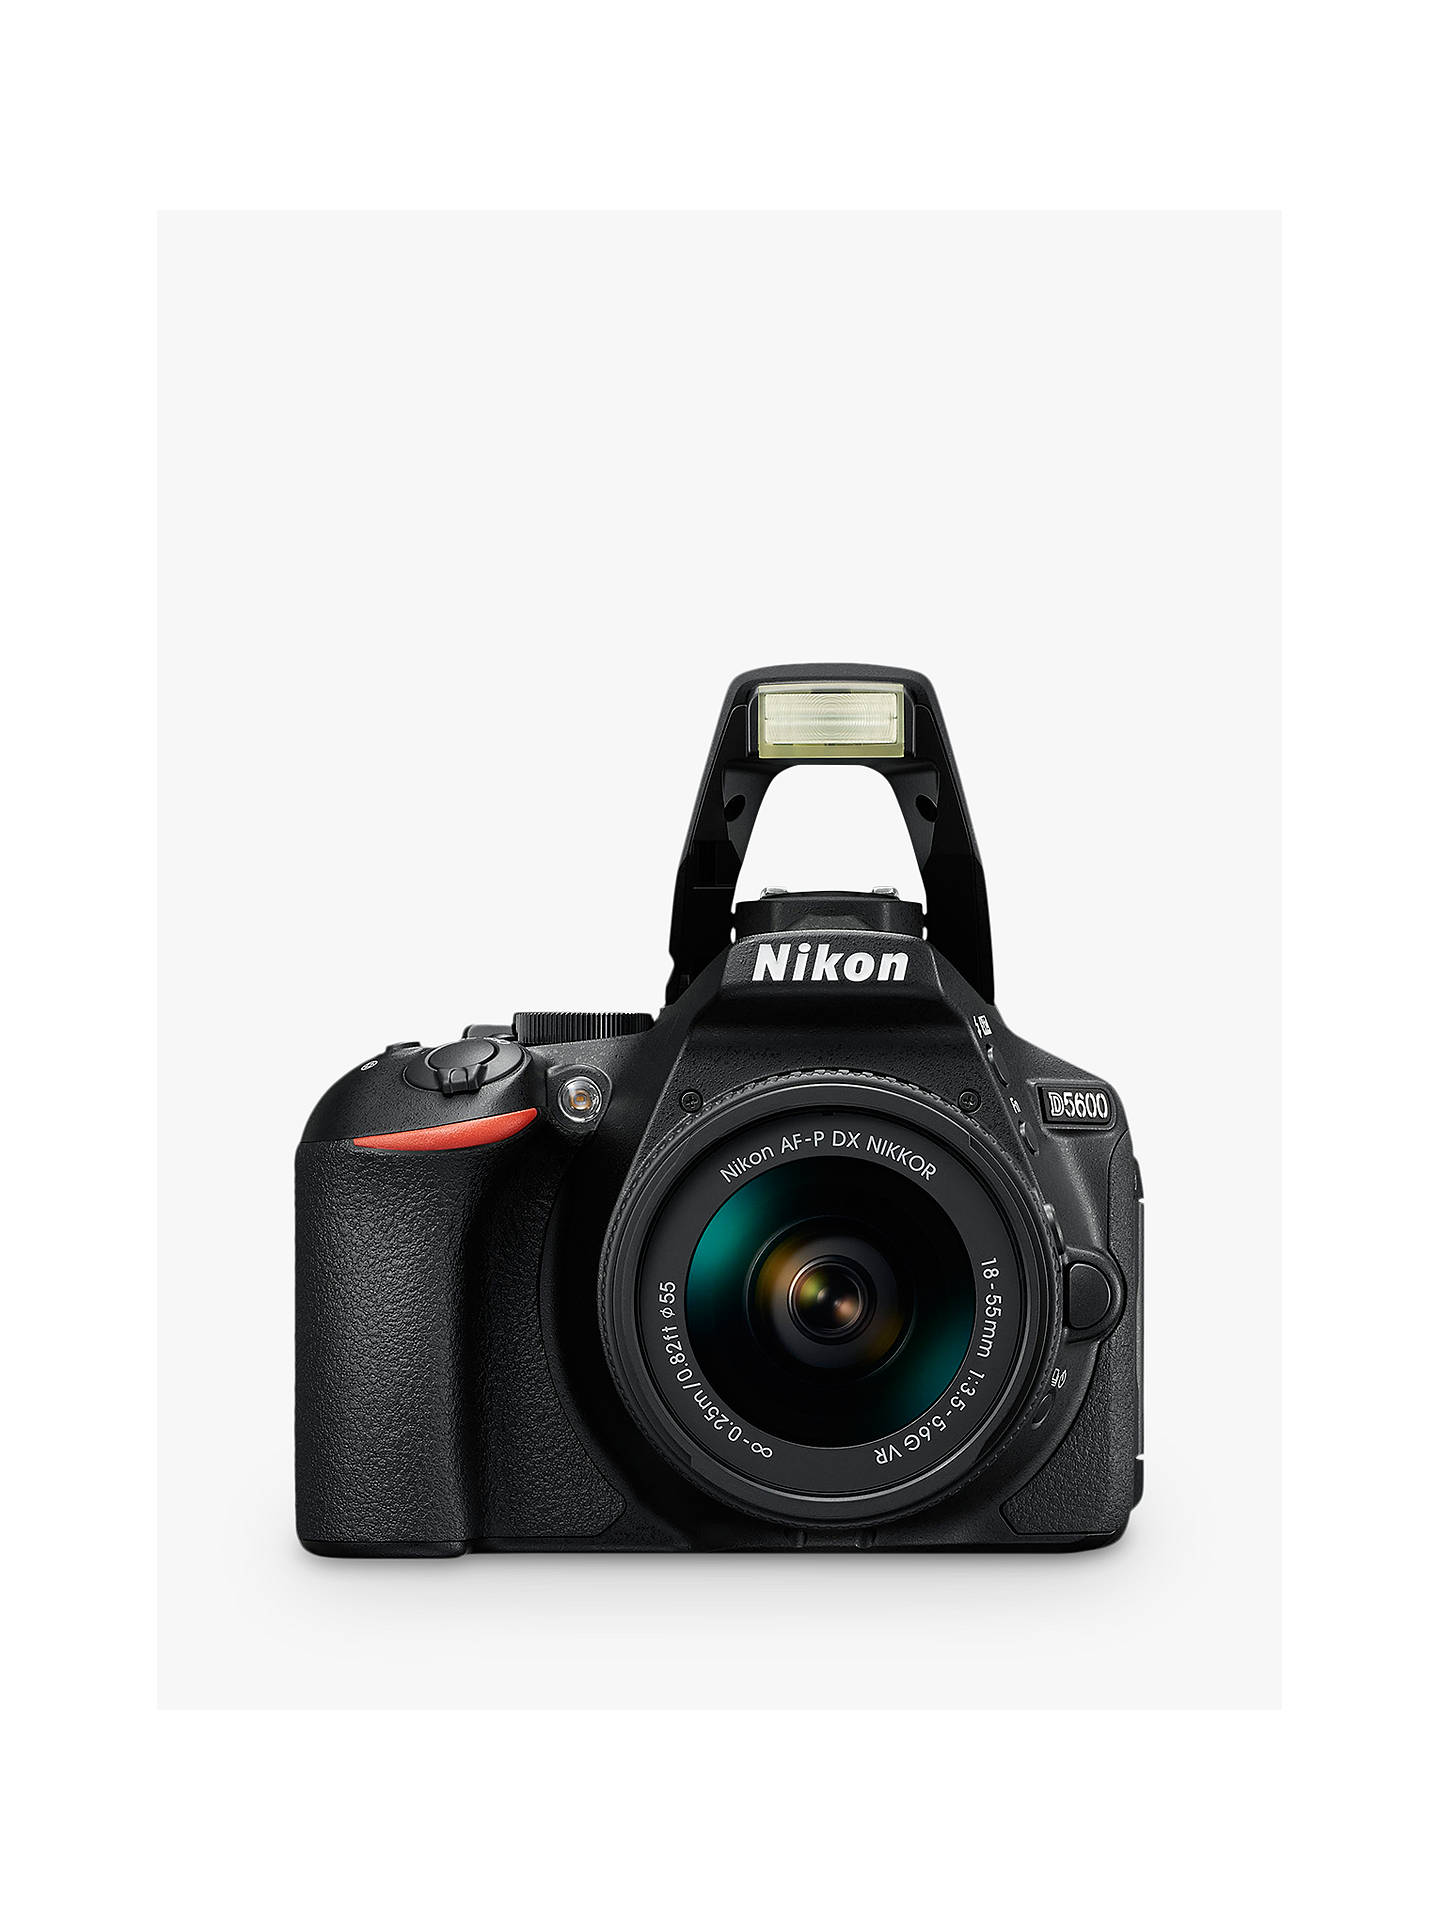 "Buy Nikon D5600 Digital SLR Camera with 18-55mm VR Lens, HD 1080p, 24.2MP, Wi-Fi, Optical Viewfinder, 3.2"" Vari-Angle LCD Touch Screen, Black Online at johnlewis.com"